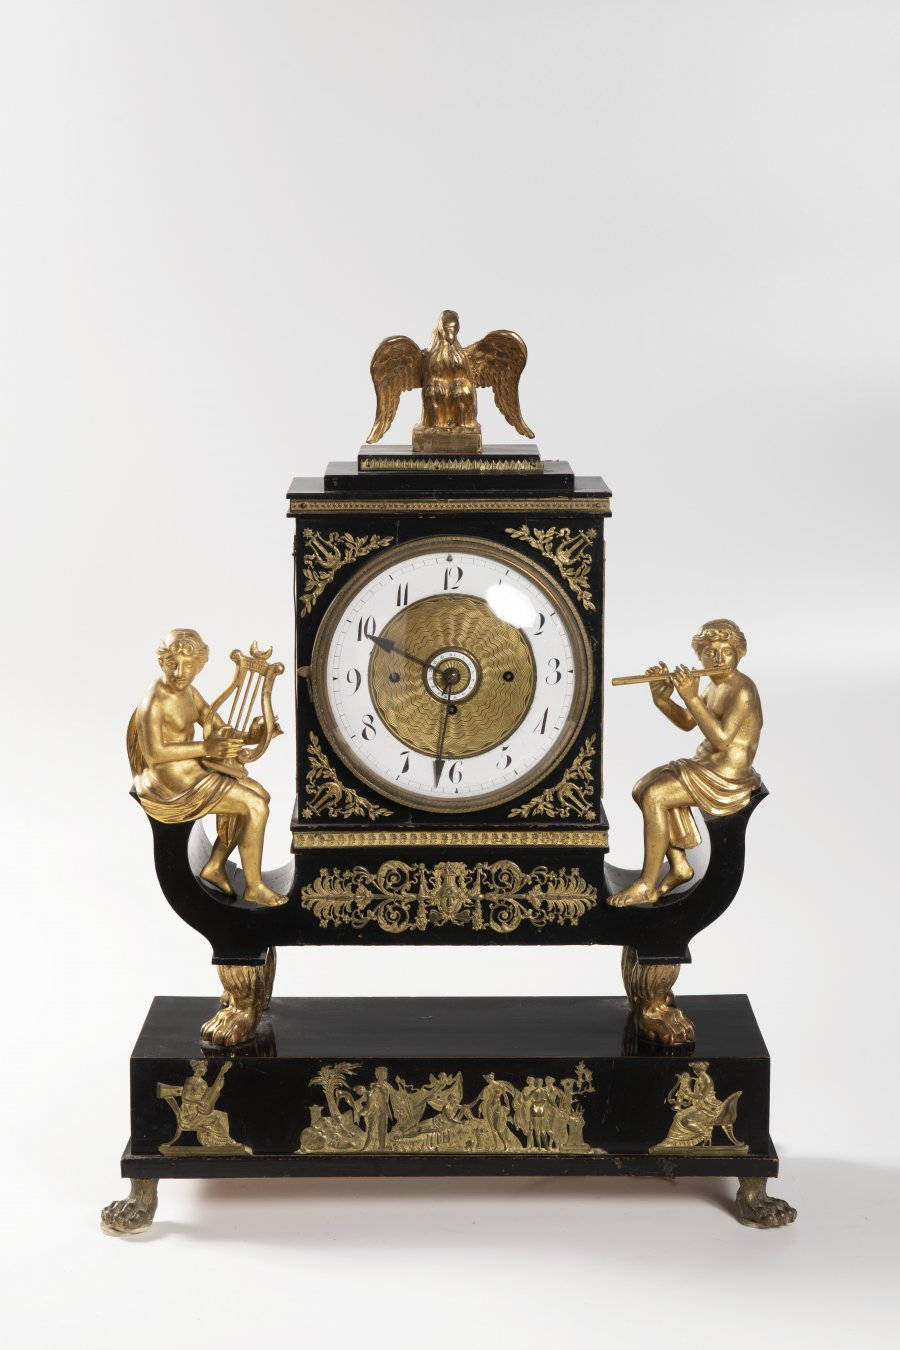 AN EMPIRE CLOCK WITH MUSIC BOX